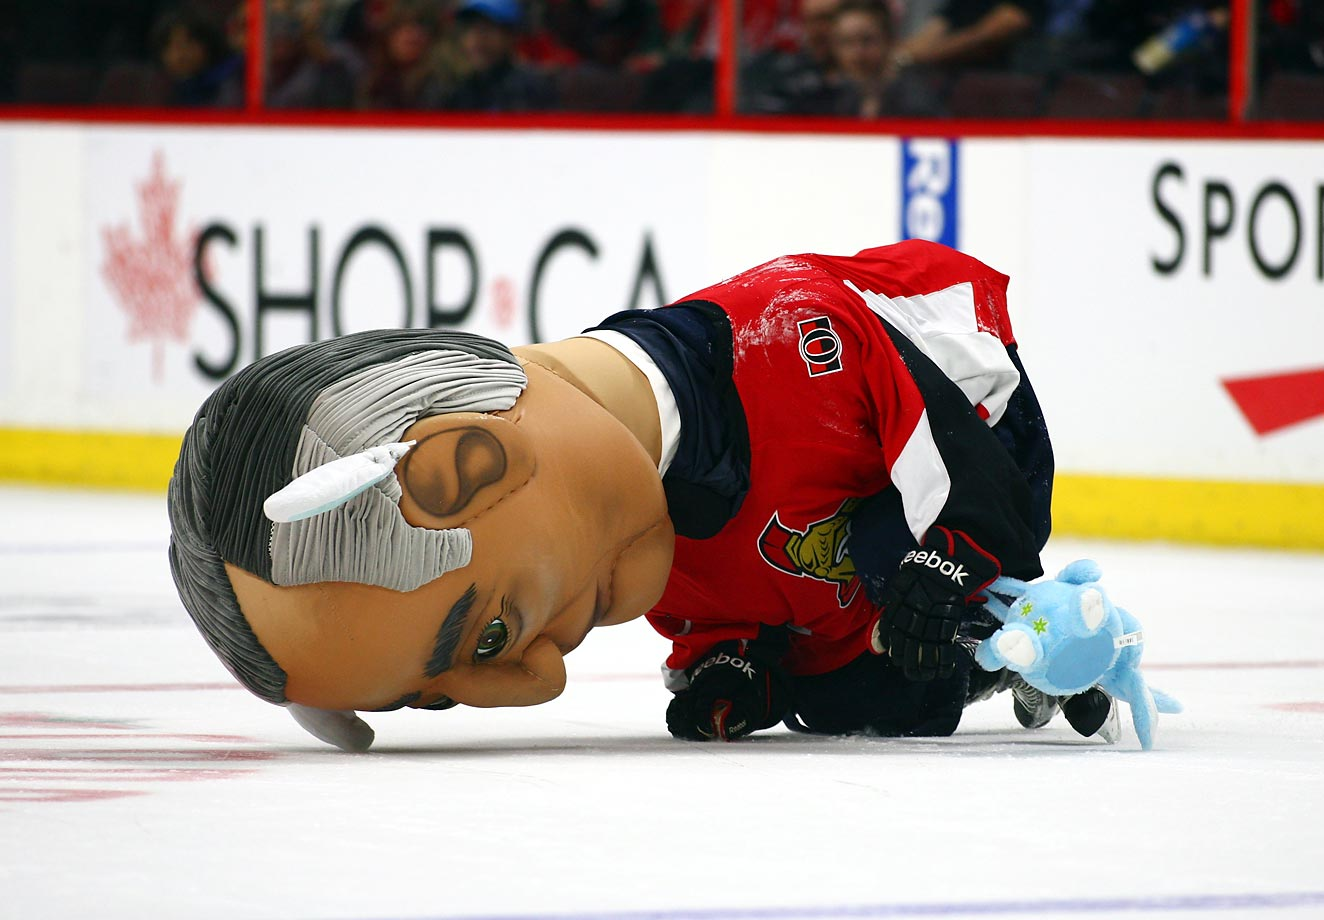 Sir John McDonald falls while trying to collect eggs in his easter basket during the Prime Ministers race at the game between the Capitals and Senators.